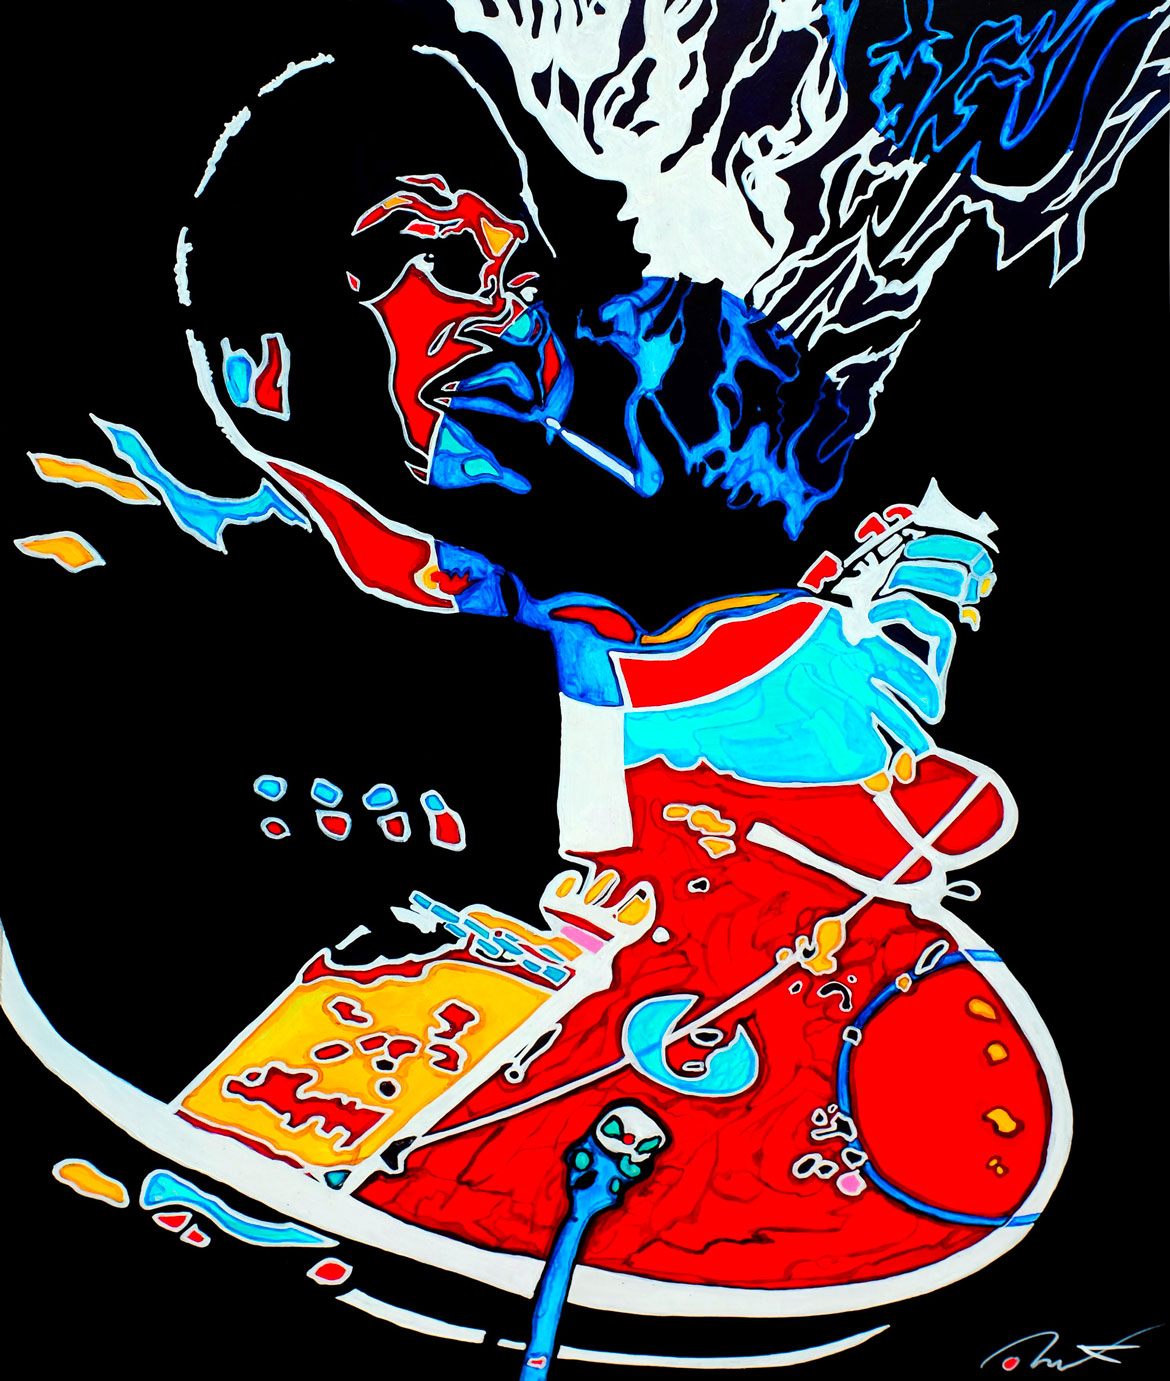 "BB.king ""Riding with the king"" Acrylique sur panneau alvéolaire 73x 58"